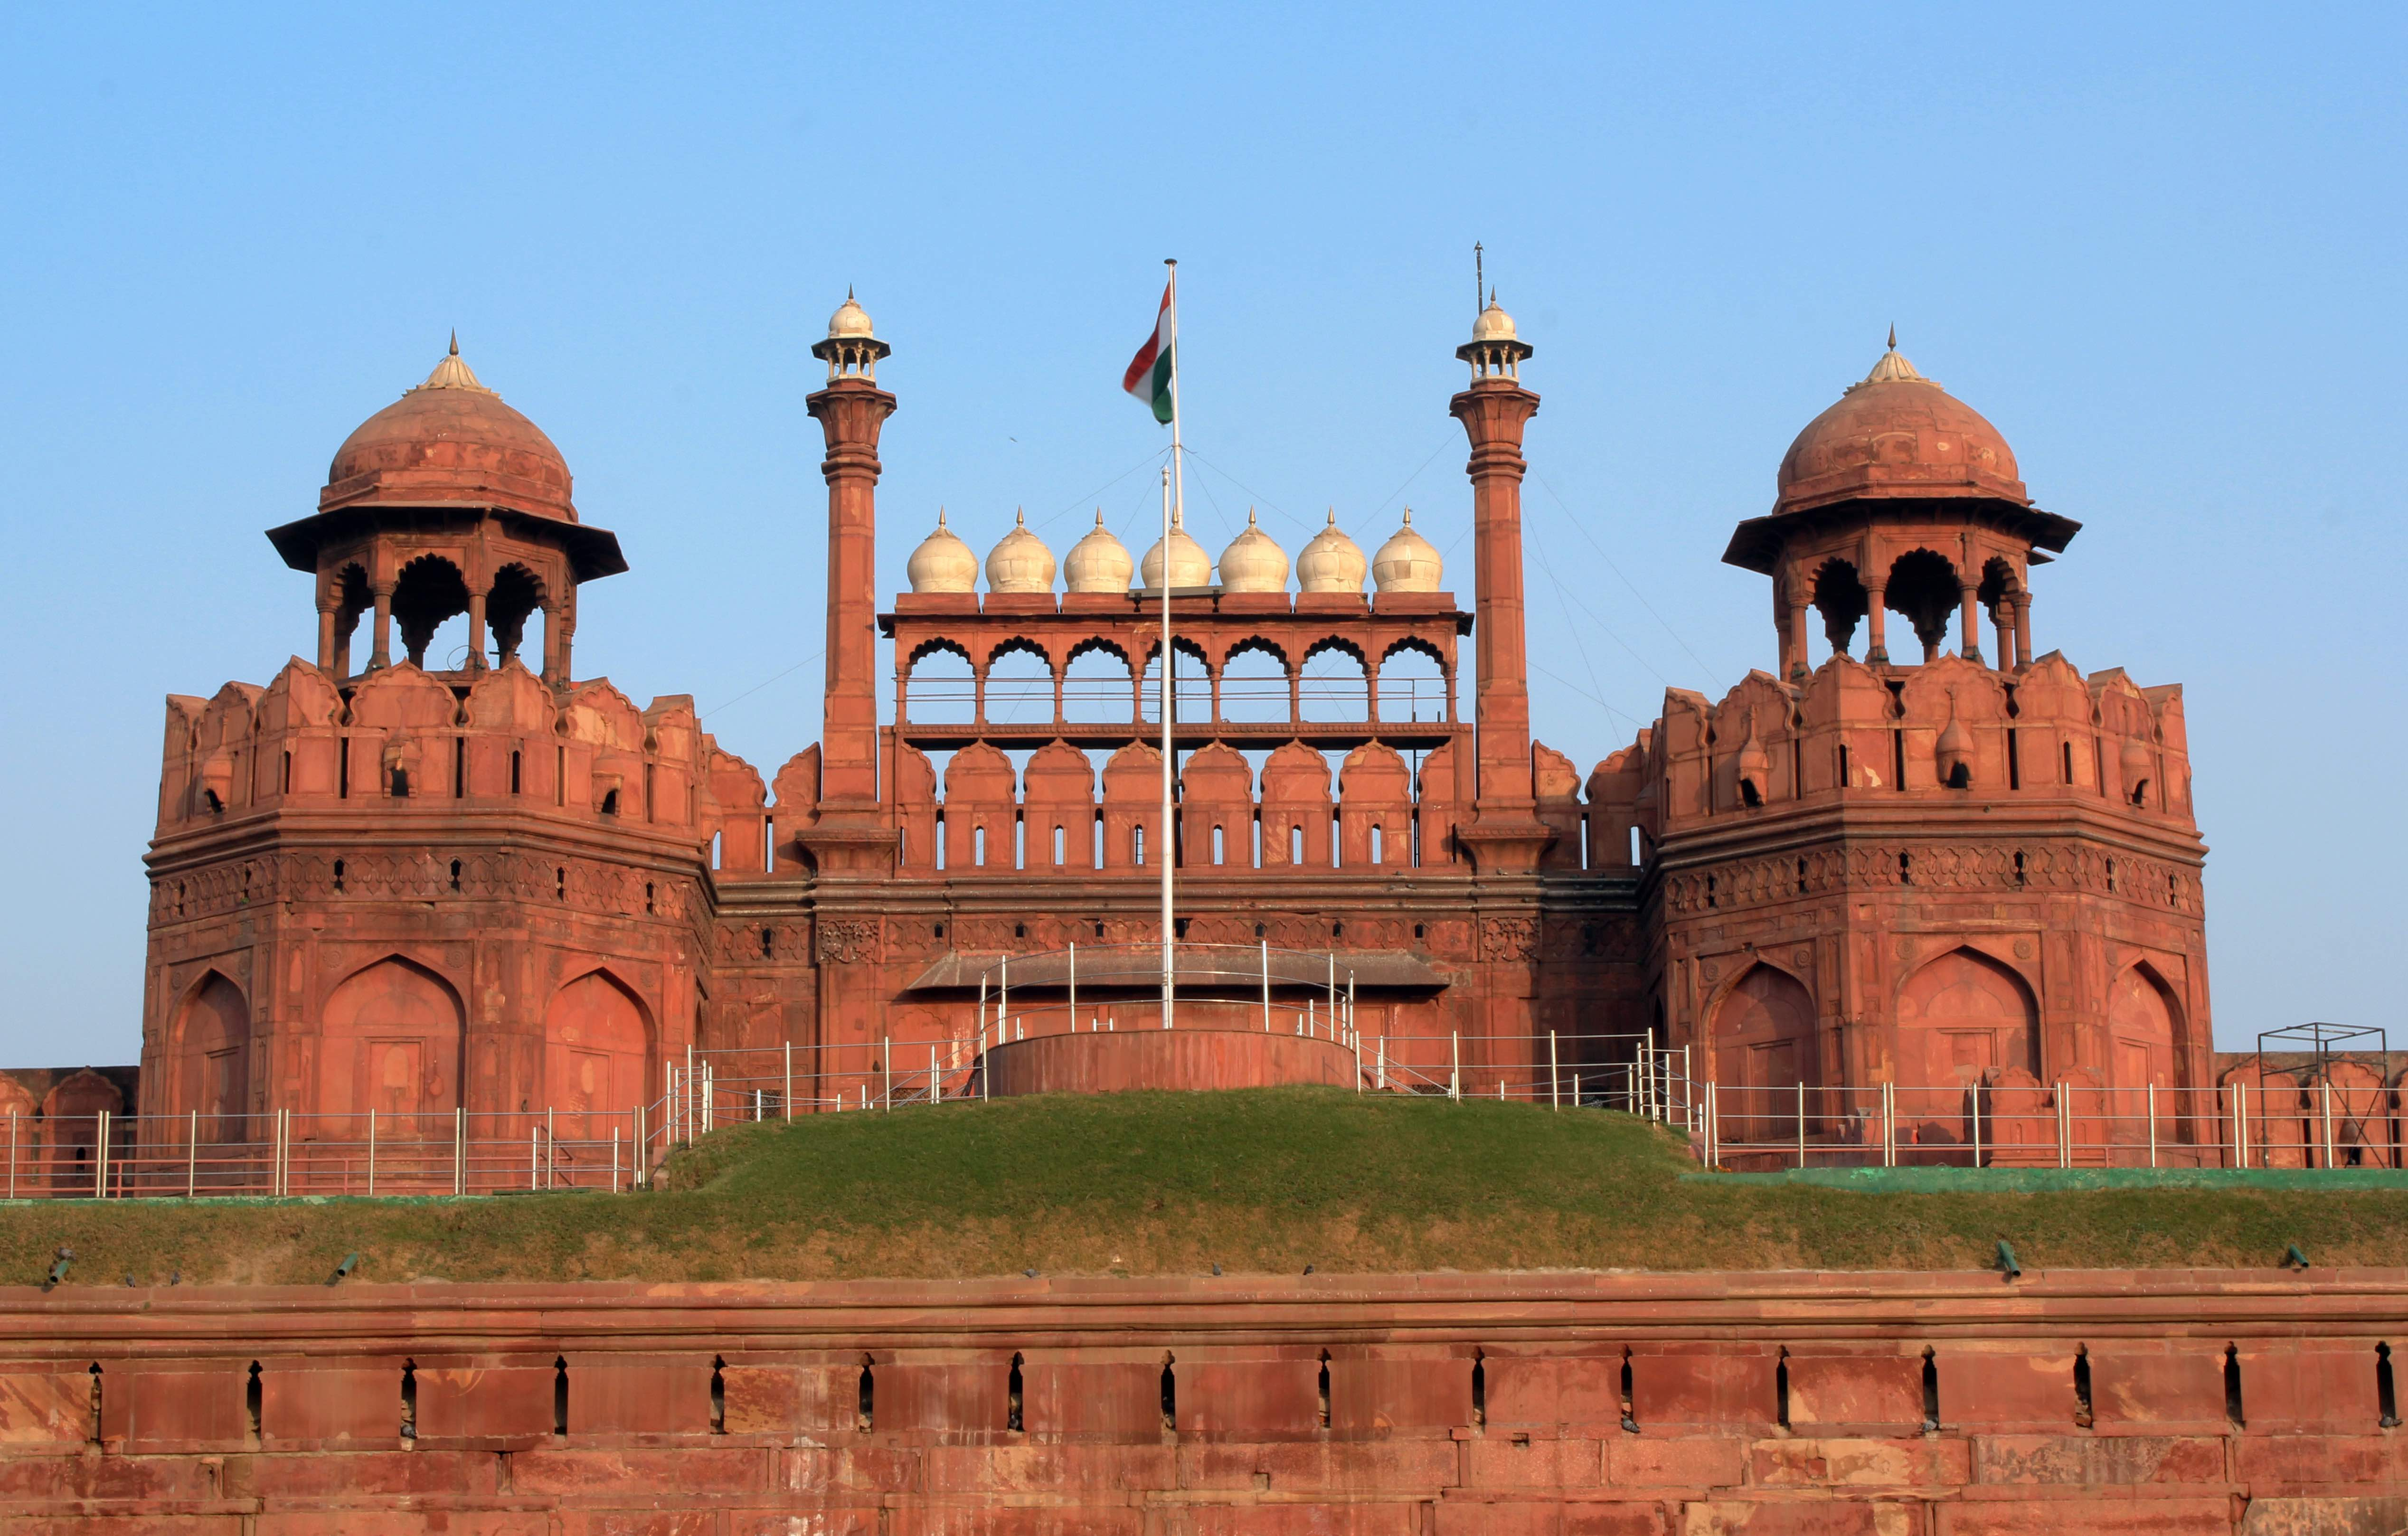 Red Fort Facade: By Mahesh Bhanupanth (Own work) [CC BY-SA 3.0 (http://creativecommons.org/licenses/by-sa/3.0)], via Wikimedia Commons